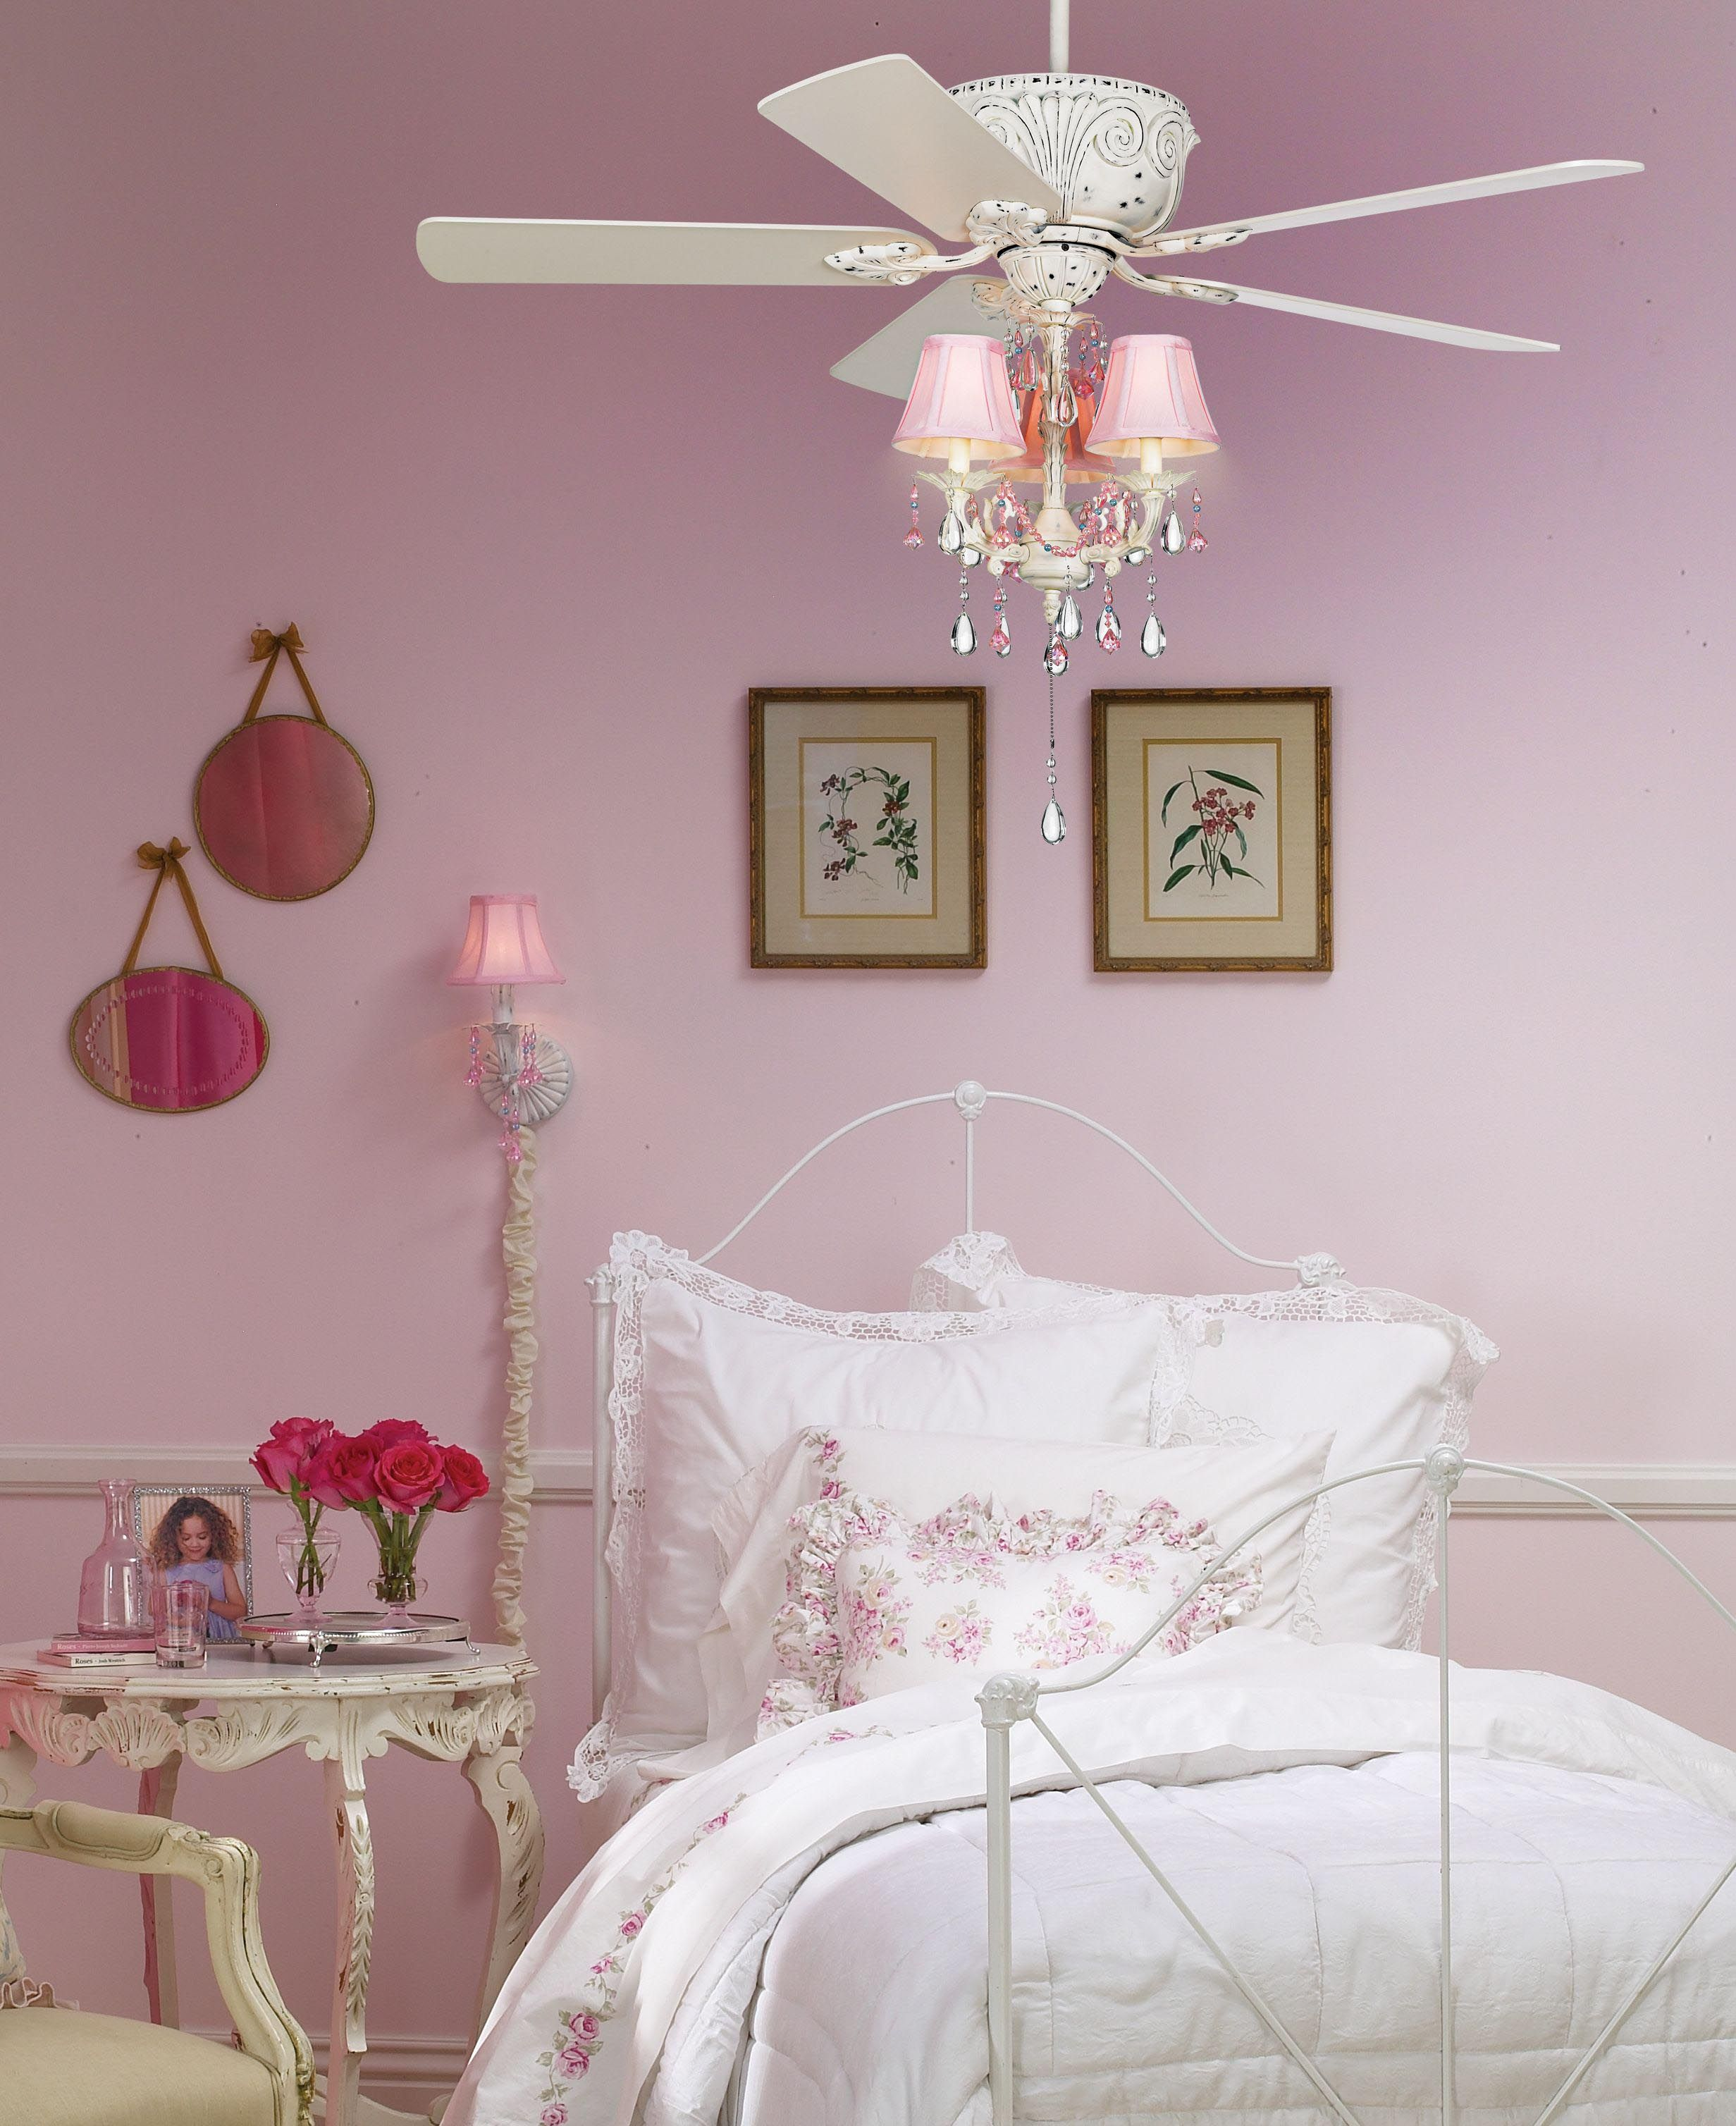 Ceiling Fan with Chandelier for Girl | Chandeliers | Pinterest ...